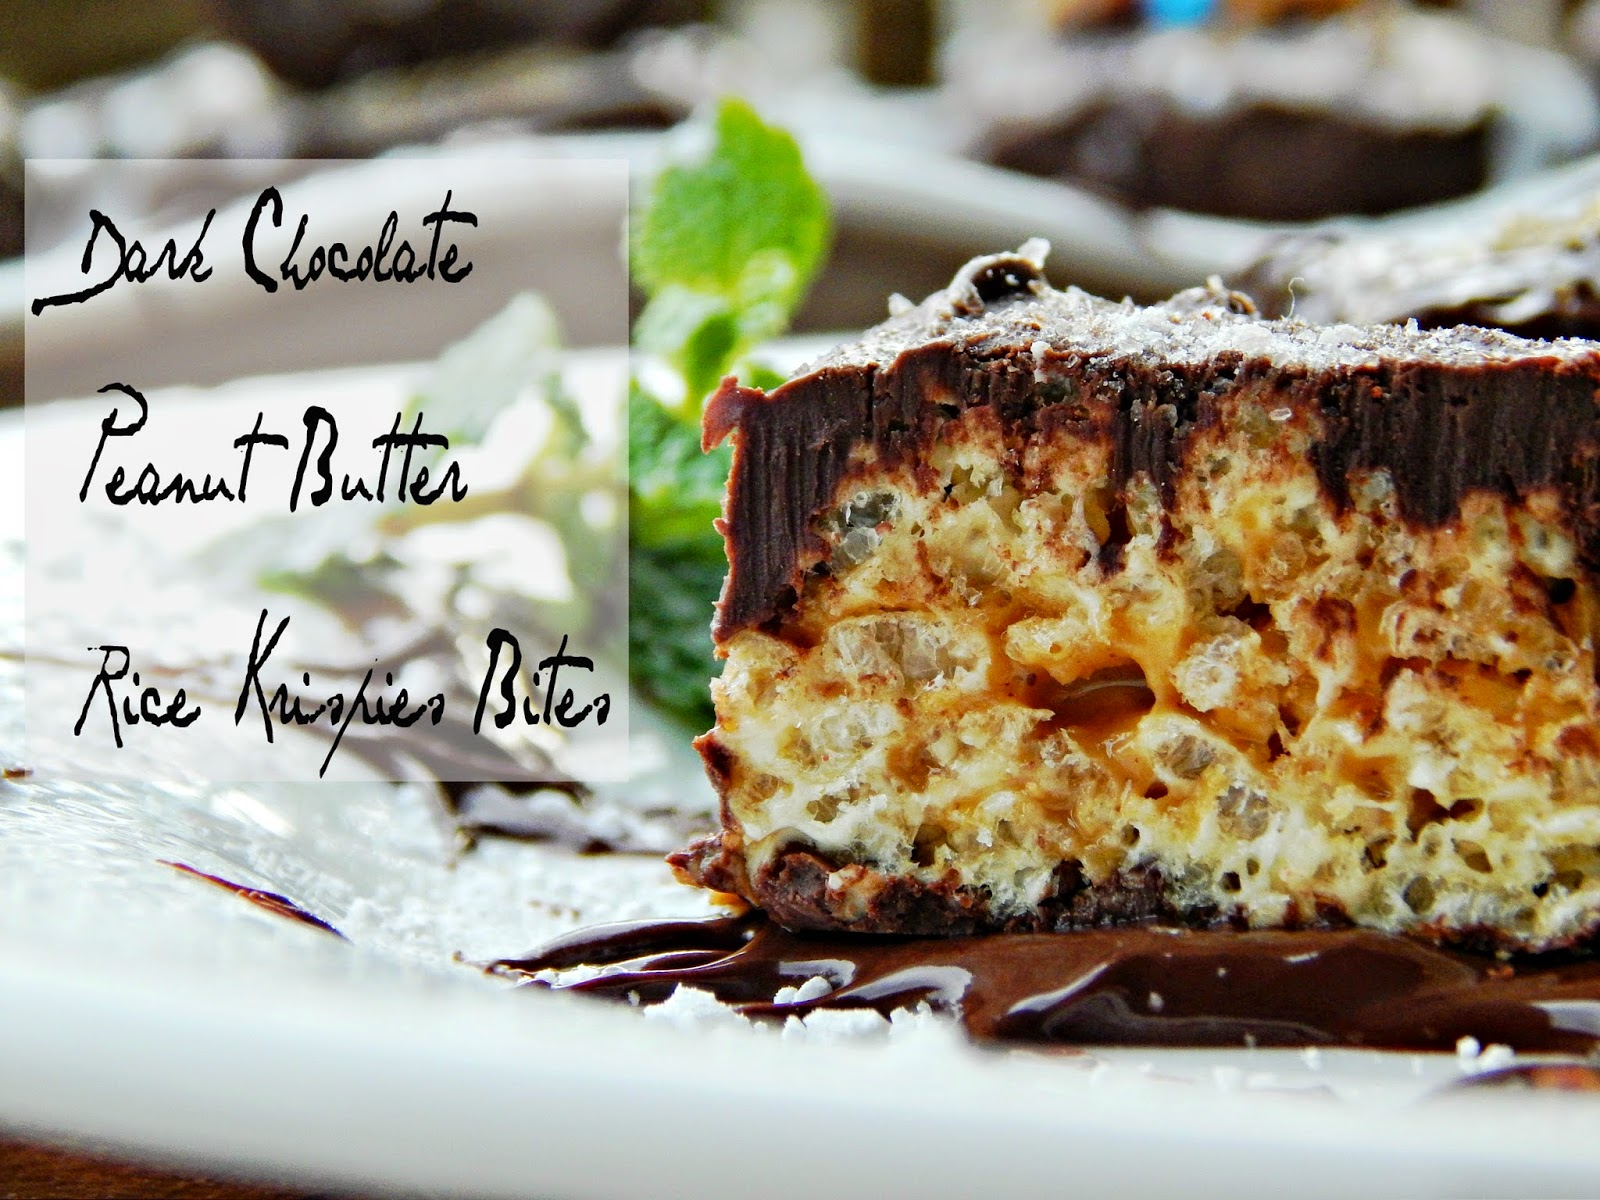 Dark Chocolate Peanut Butter Rice Krispies Treat® Bites  #kreatemyhappy #ad